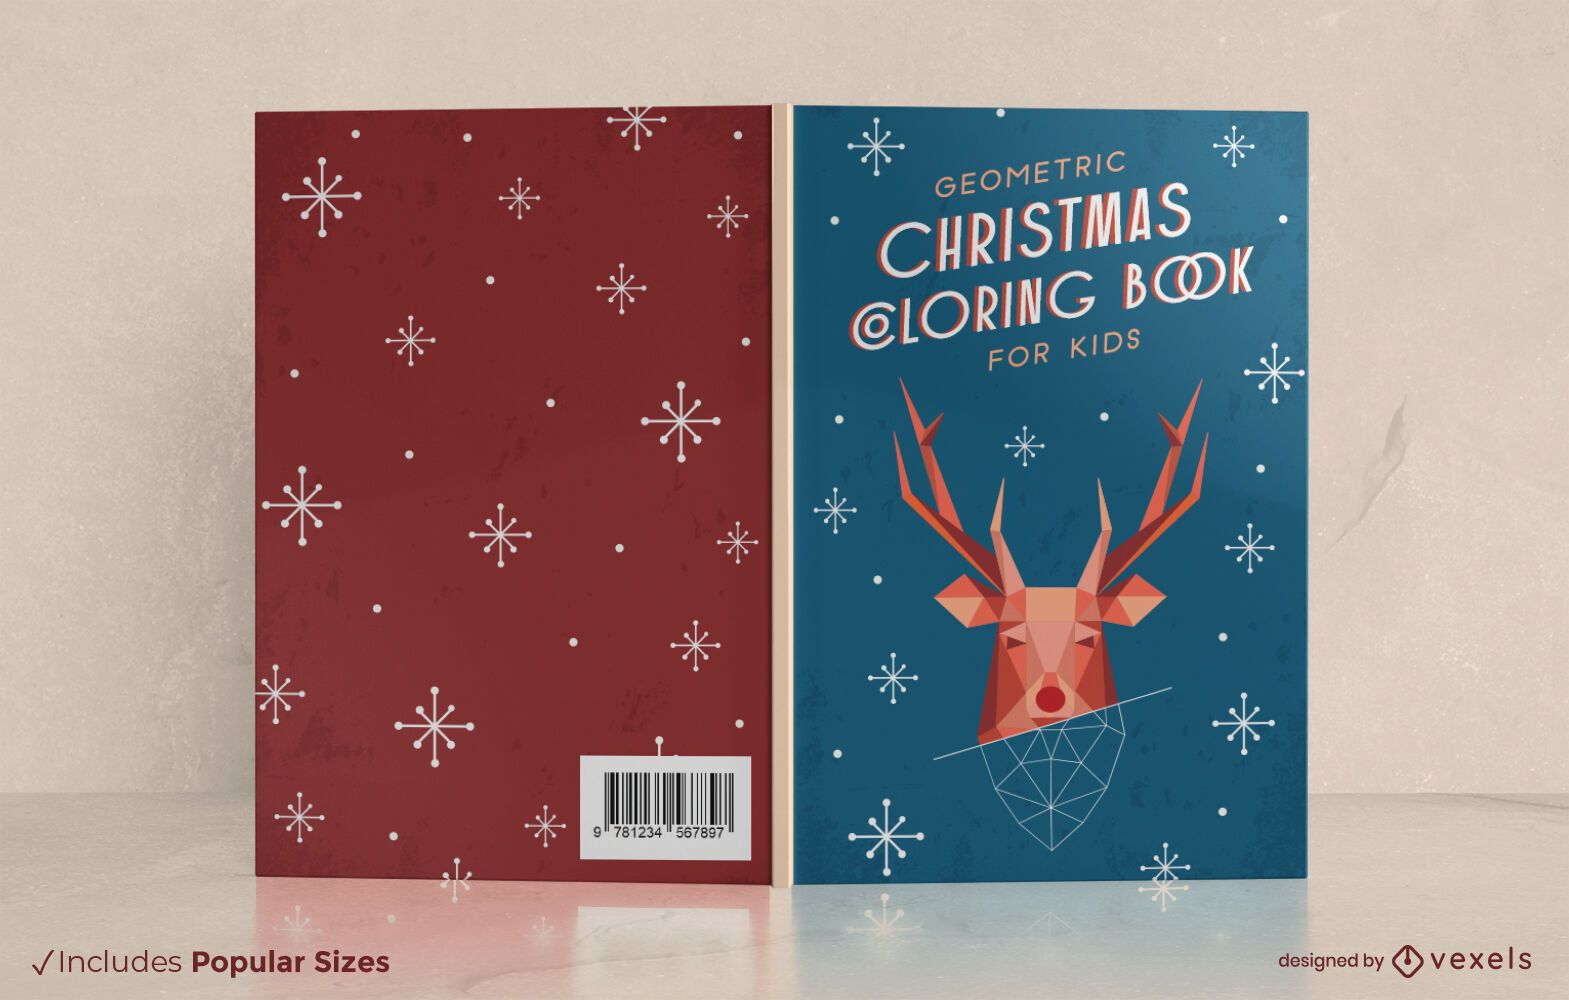 Geometric christmas coloring book cover design